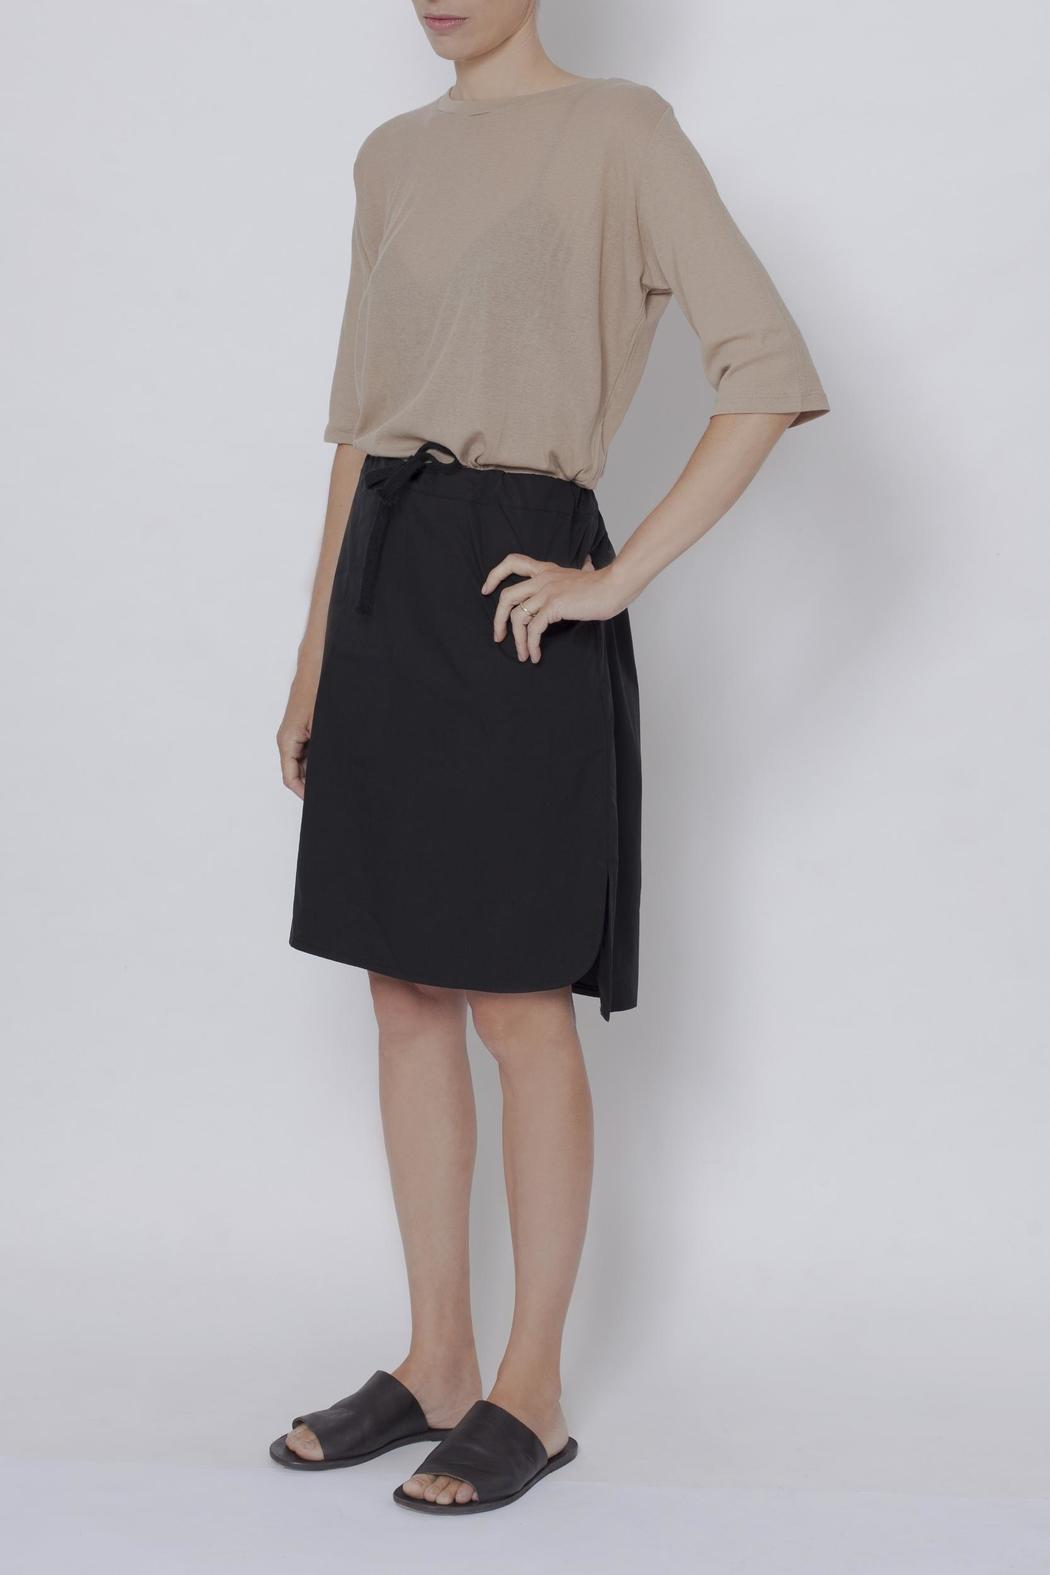 8476fcfca Shelly Shor Drawstring Cotton Skirt from Tel Aviv — Shoptiques